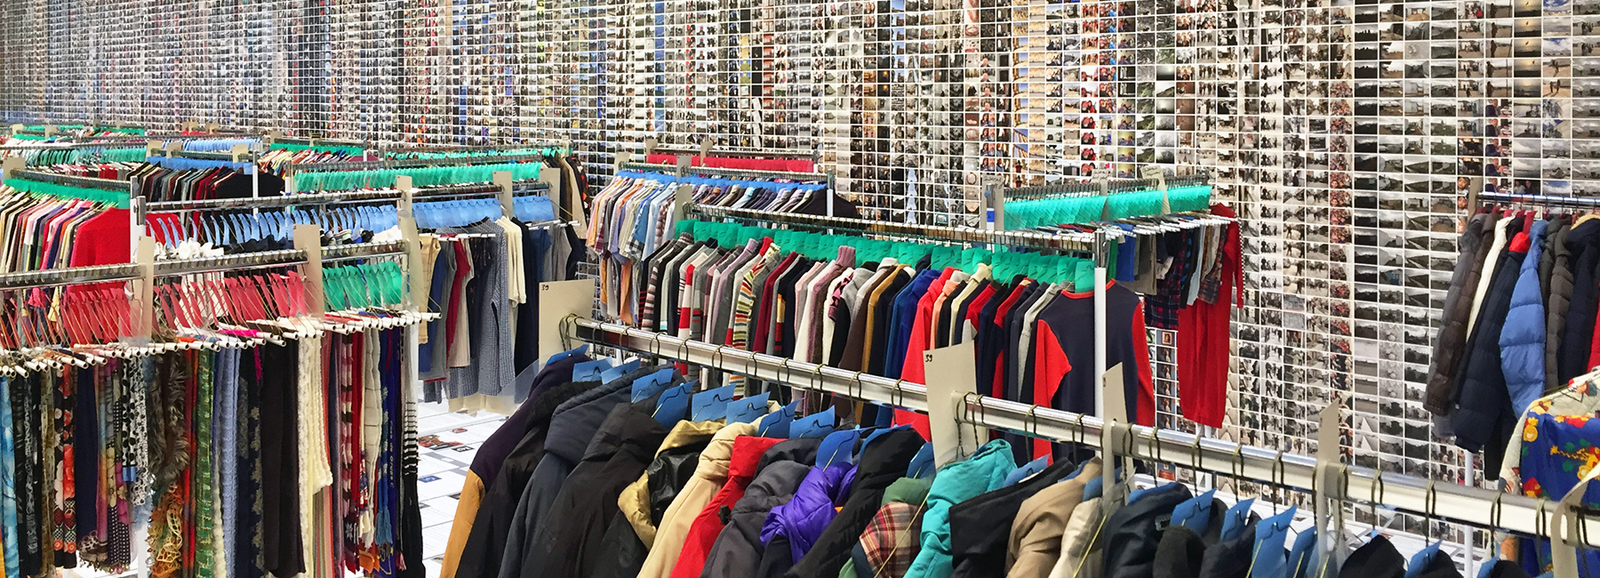 Enabling Clothing for Refugees in Egypt